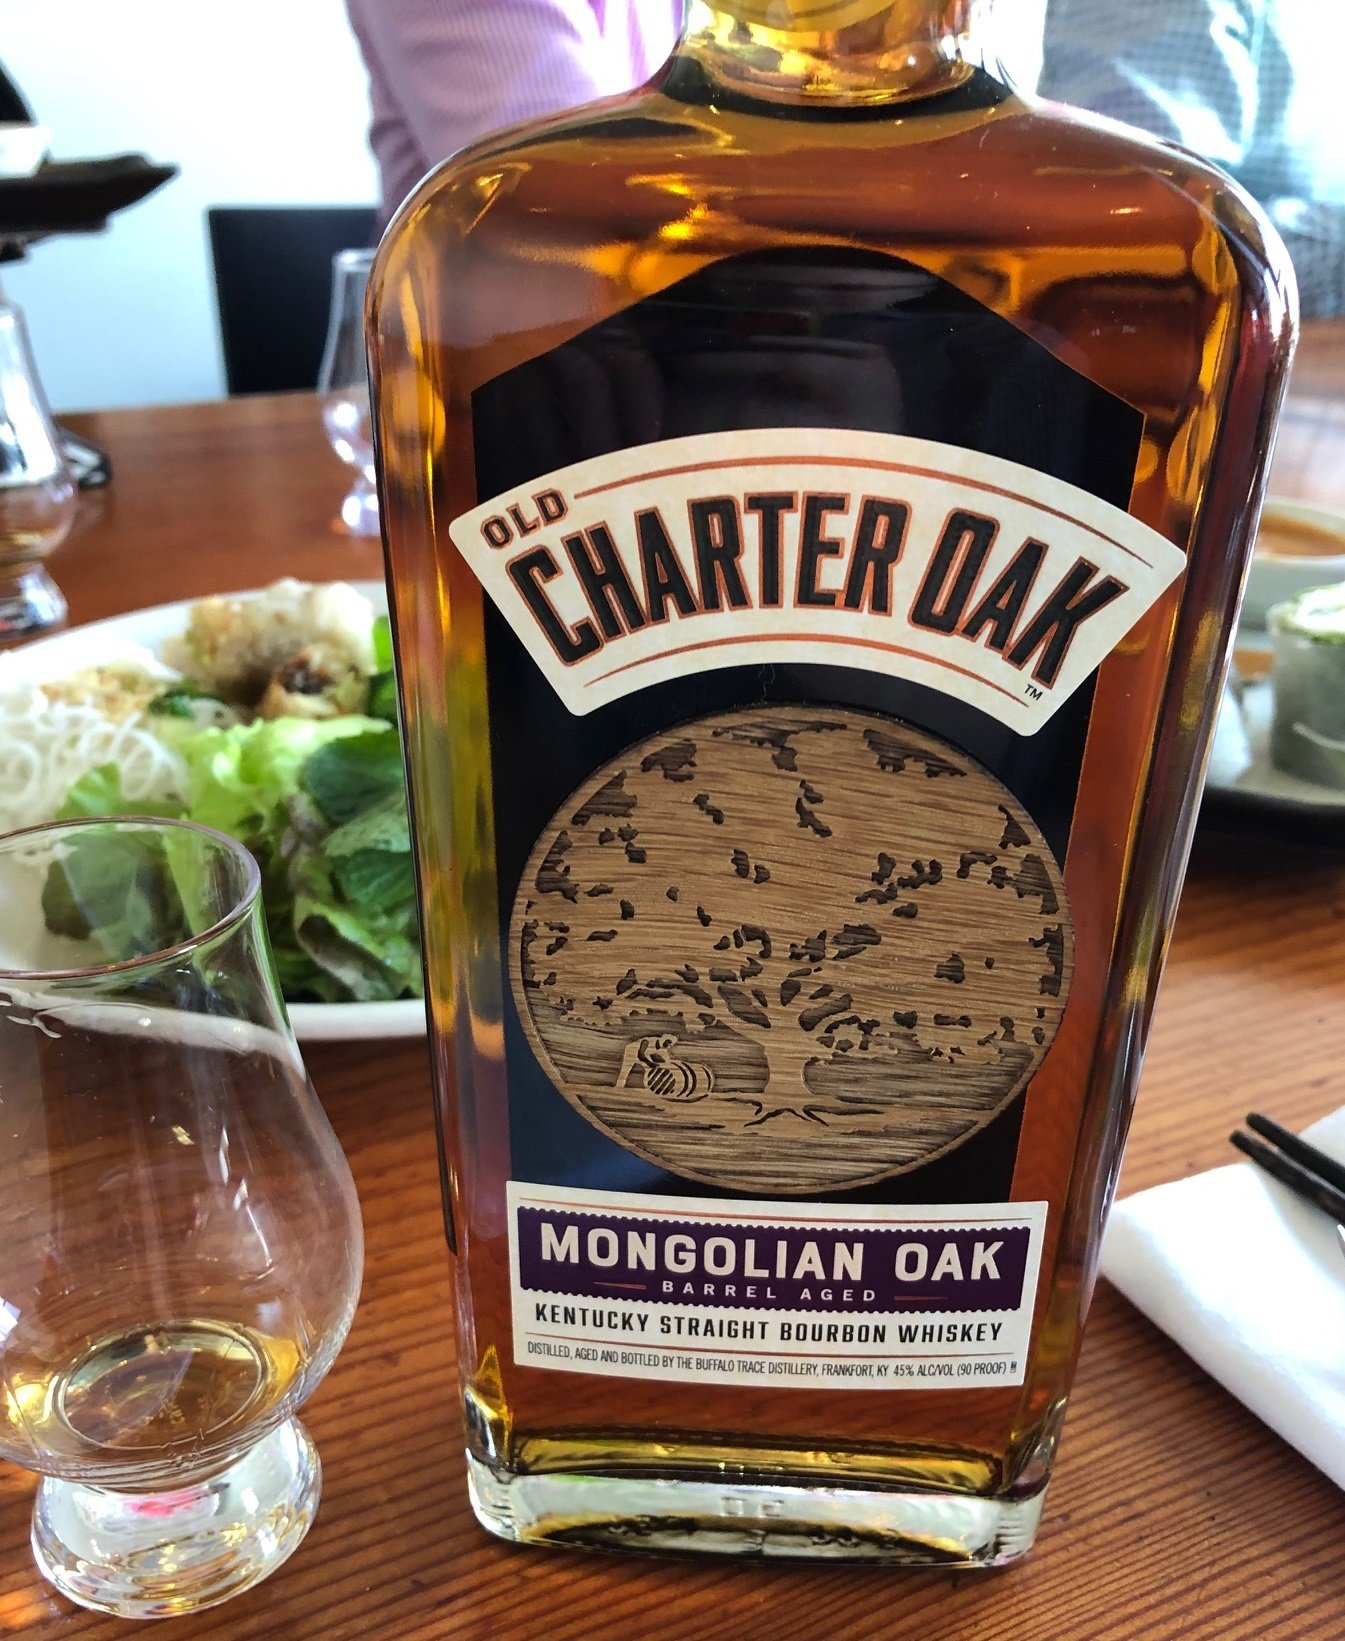 Vol Charter Review Old Charter Oak Mongolian Oak Drinkhacker